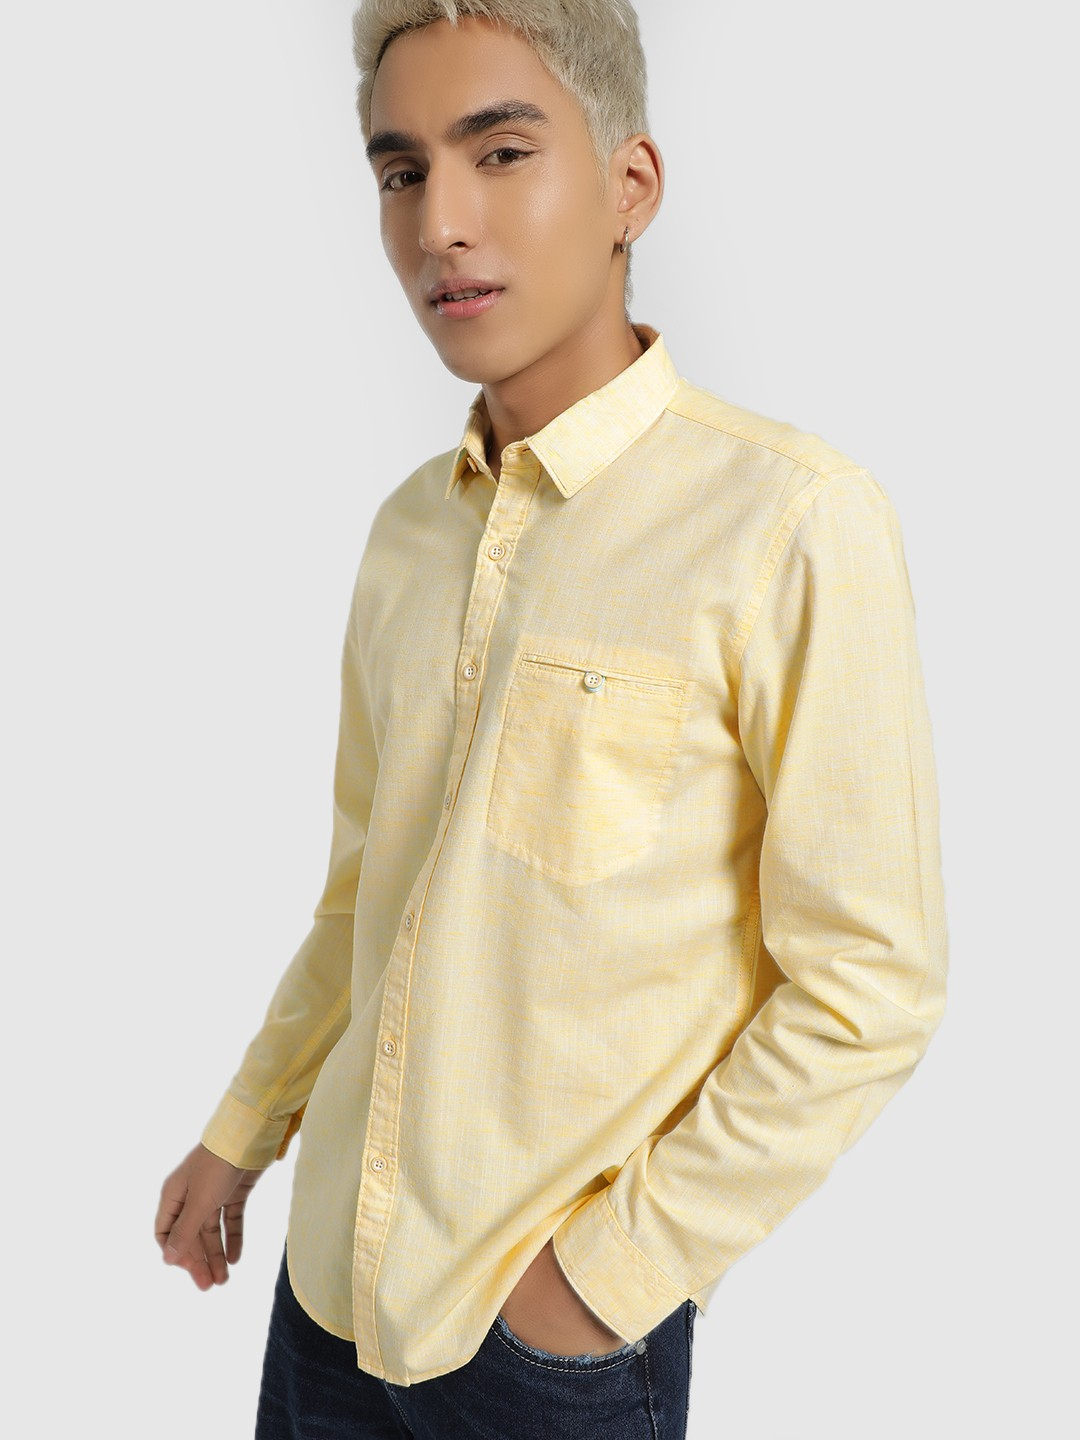 Lee Cooper Yellow Woven Casual Shirt 1